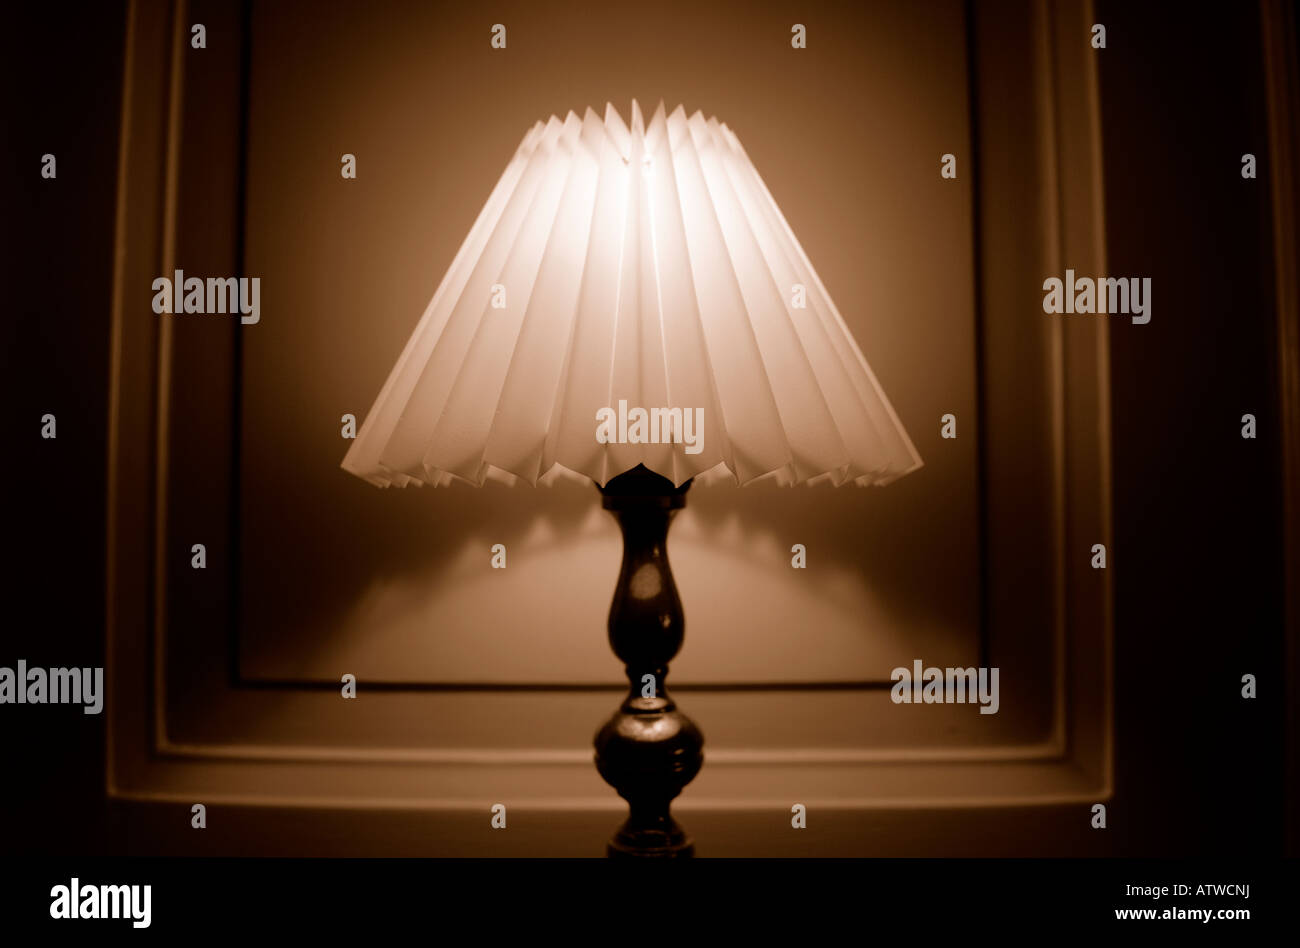 SEPIA LAMP - Stock Image